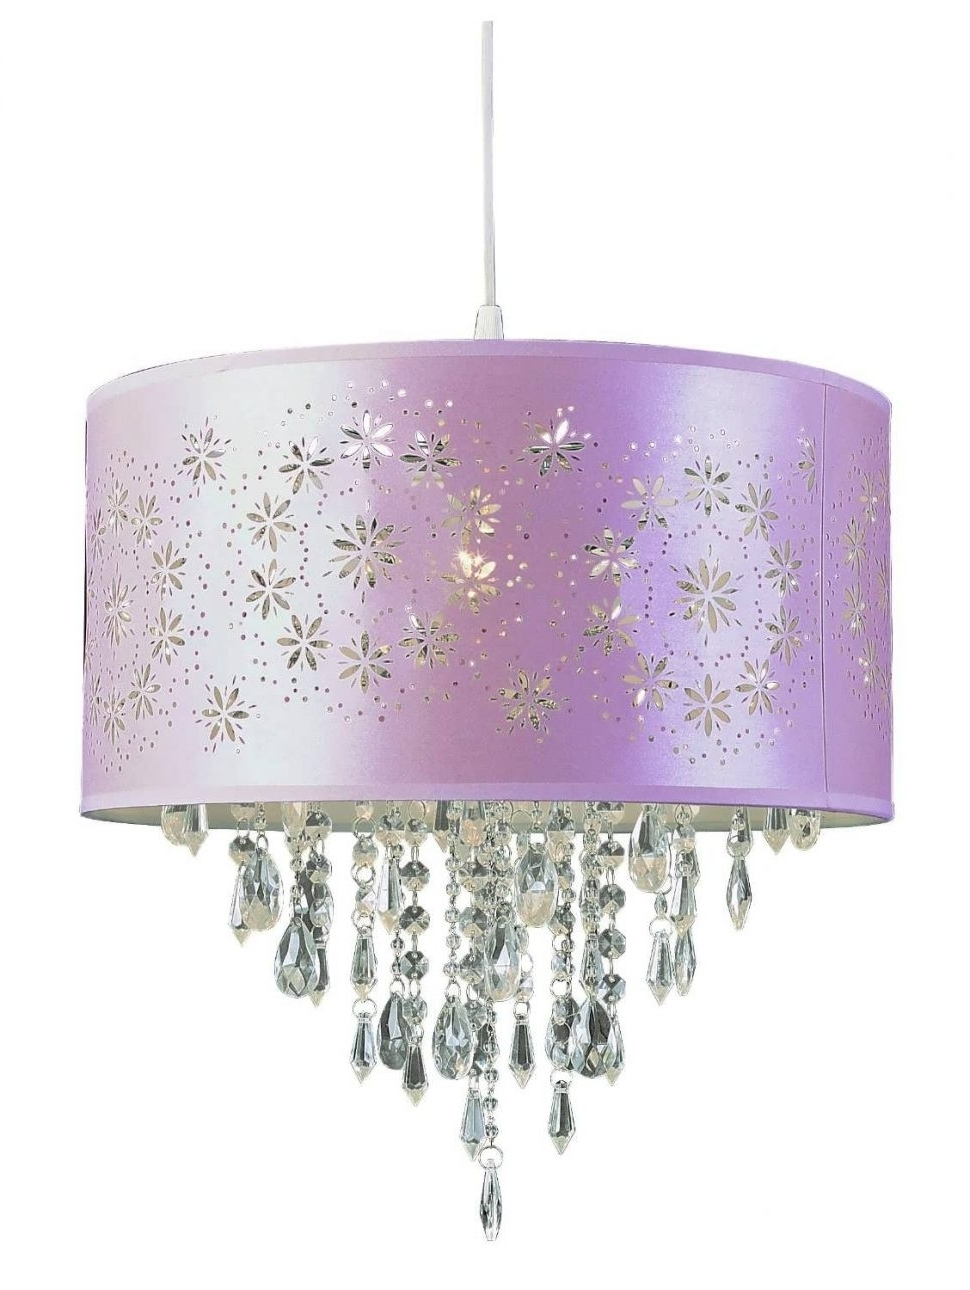 Widely Used Chandeliers For Kids Within Wonderful Bedroom Lights For Girls Chandelier Kids Room Antique (View 20 of 20)